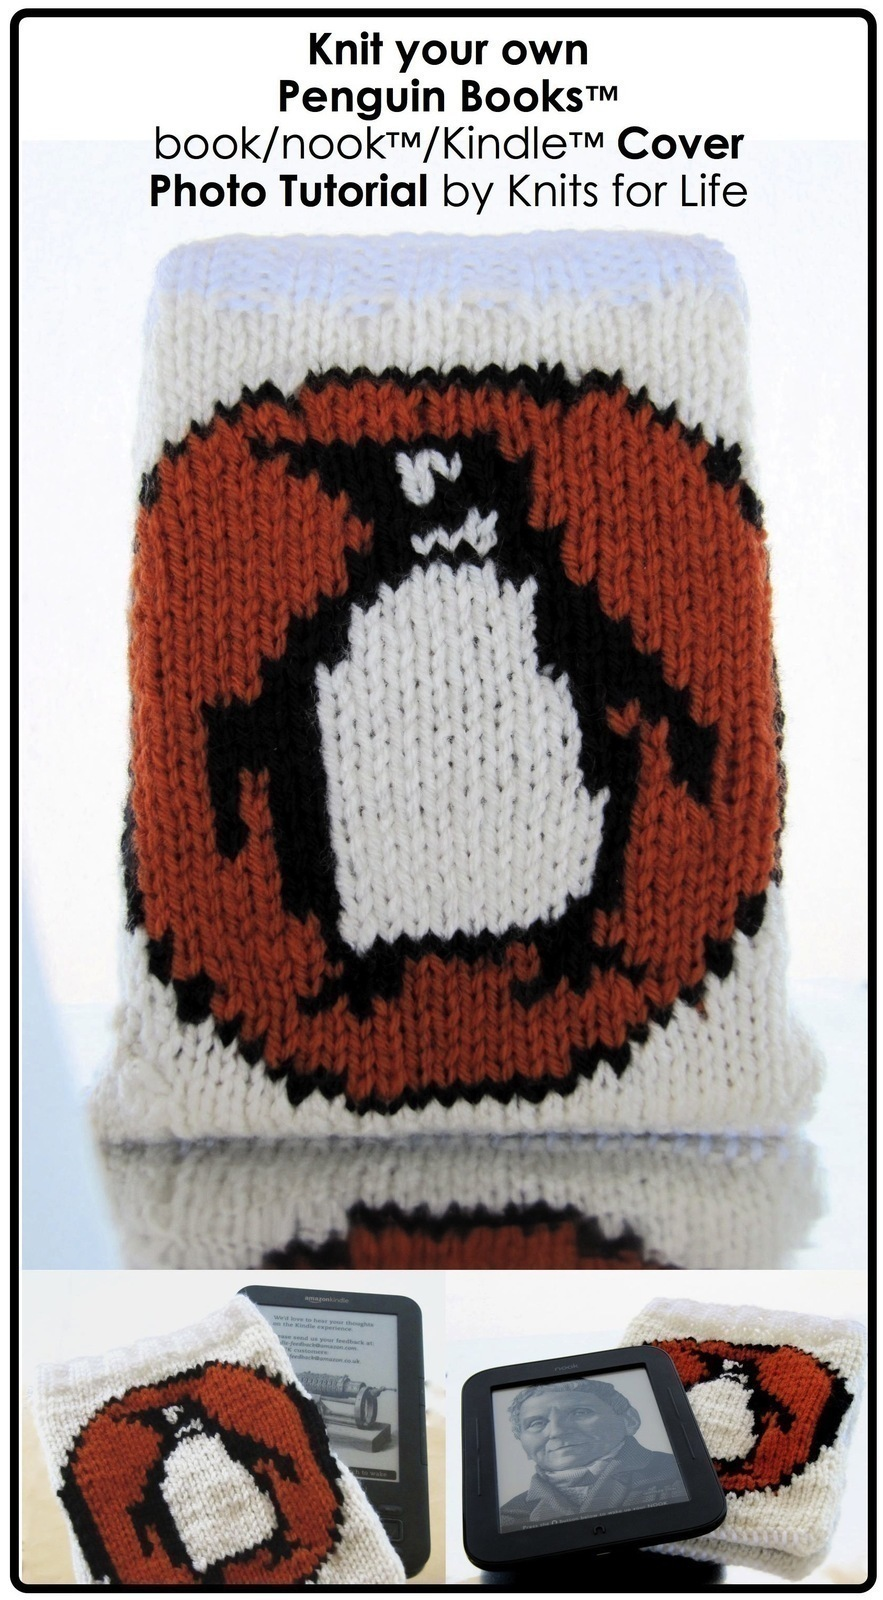 Penguin Book Cover Make Your Own ~ Knitted penguin books book nook kindle cover · how to make